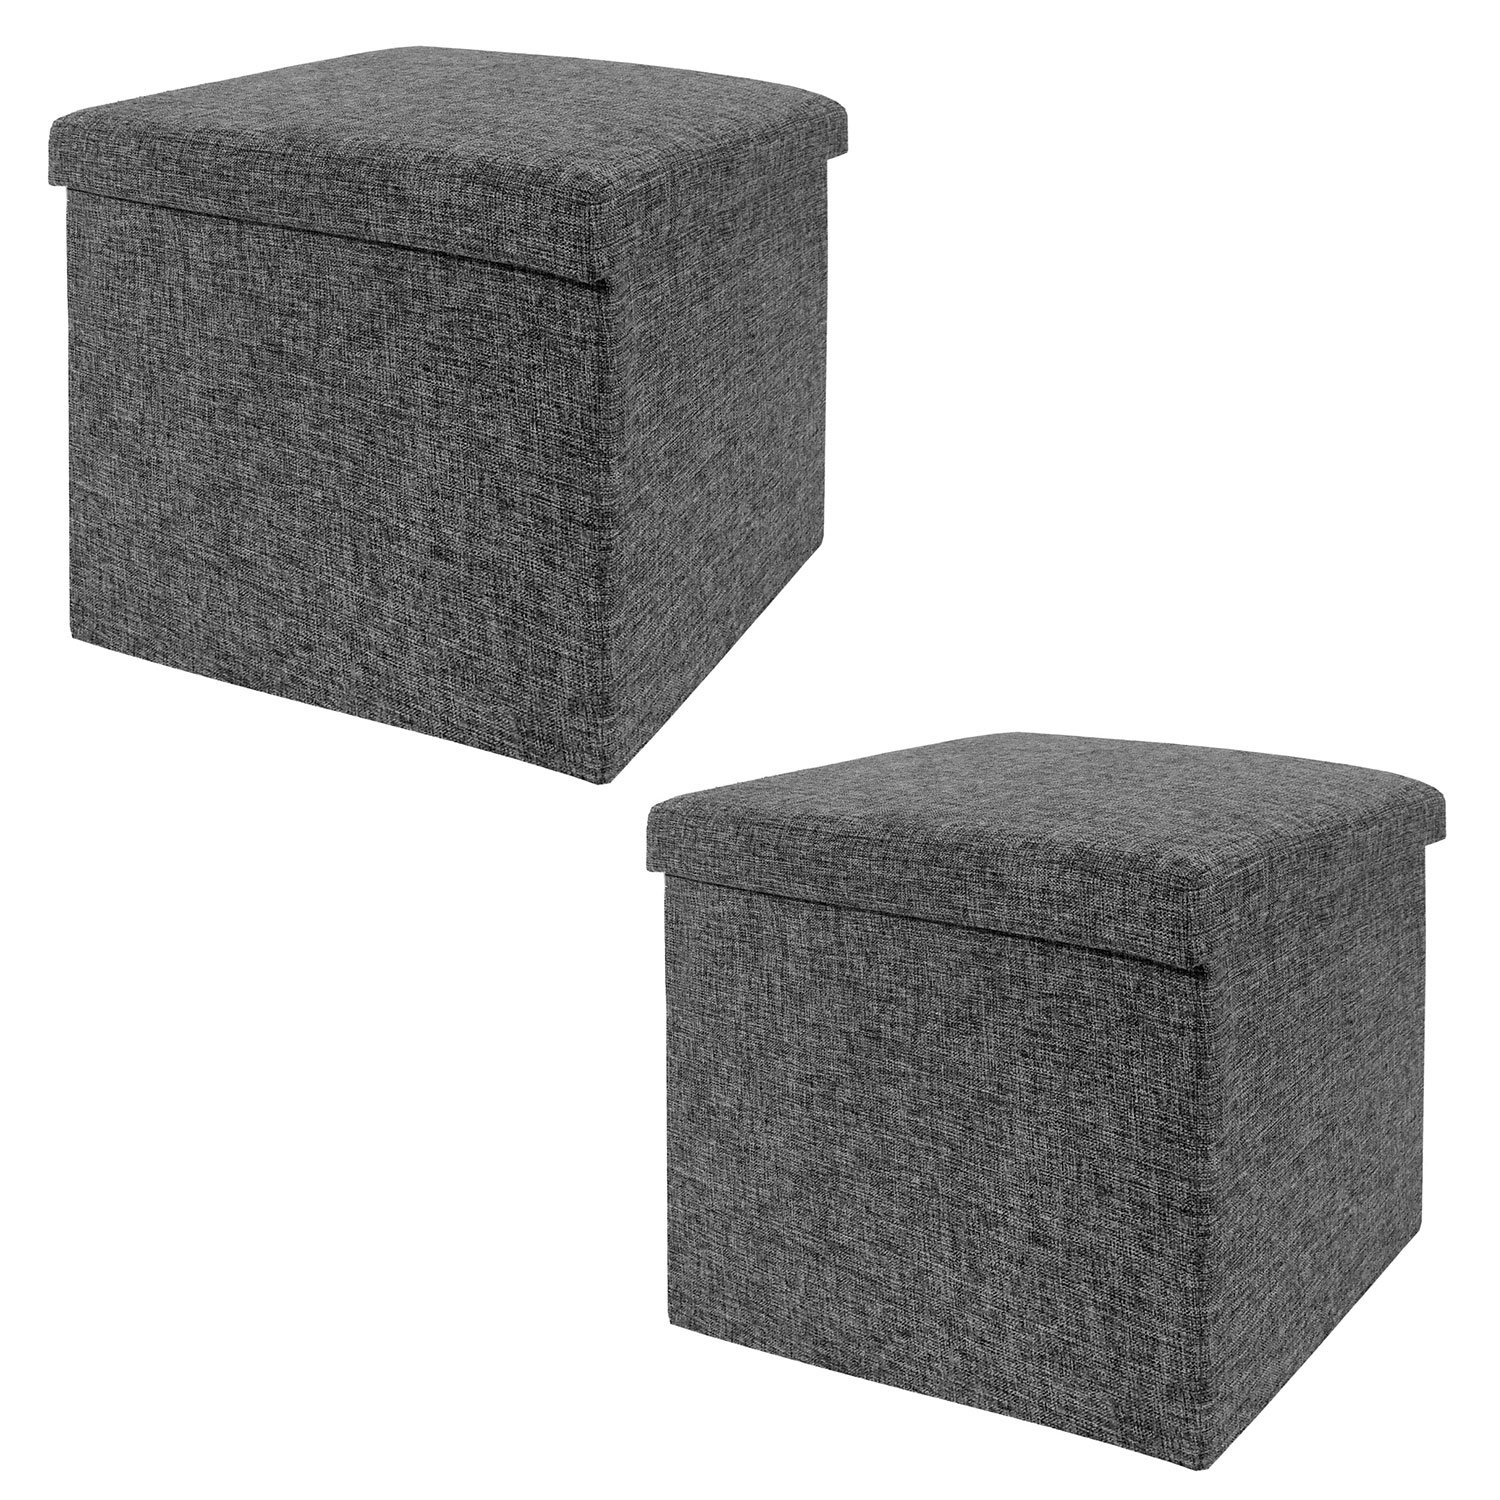 Seville Classics WEB291 15.7'' Foldable Storage Ottoman Footrest Toy Box Coffee Table Stool, 2-Pack, Charcoal Gray by Seville Classics